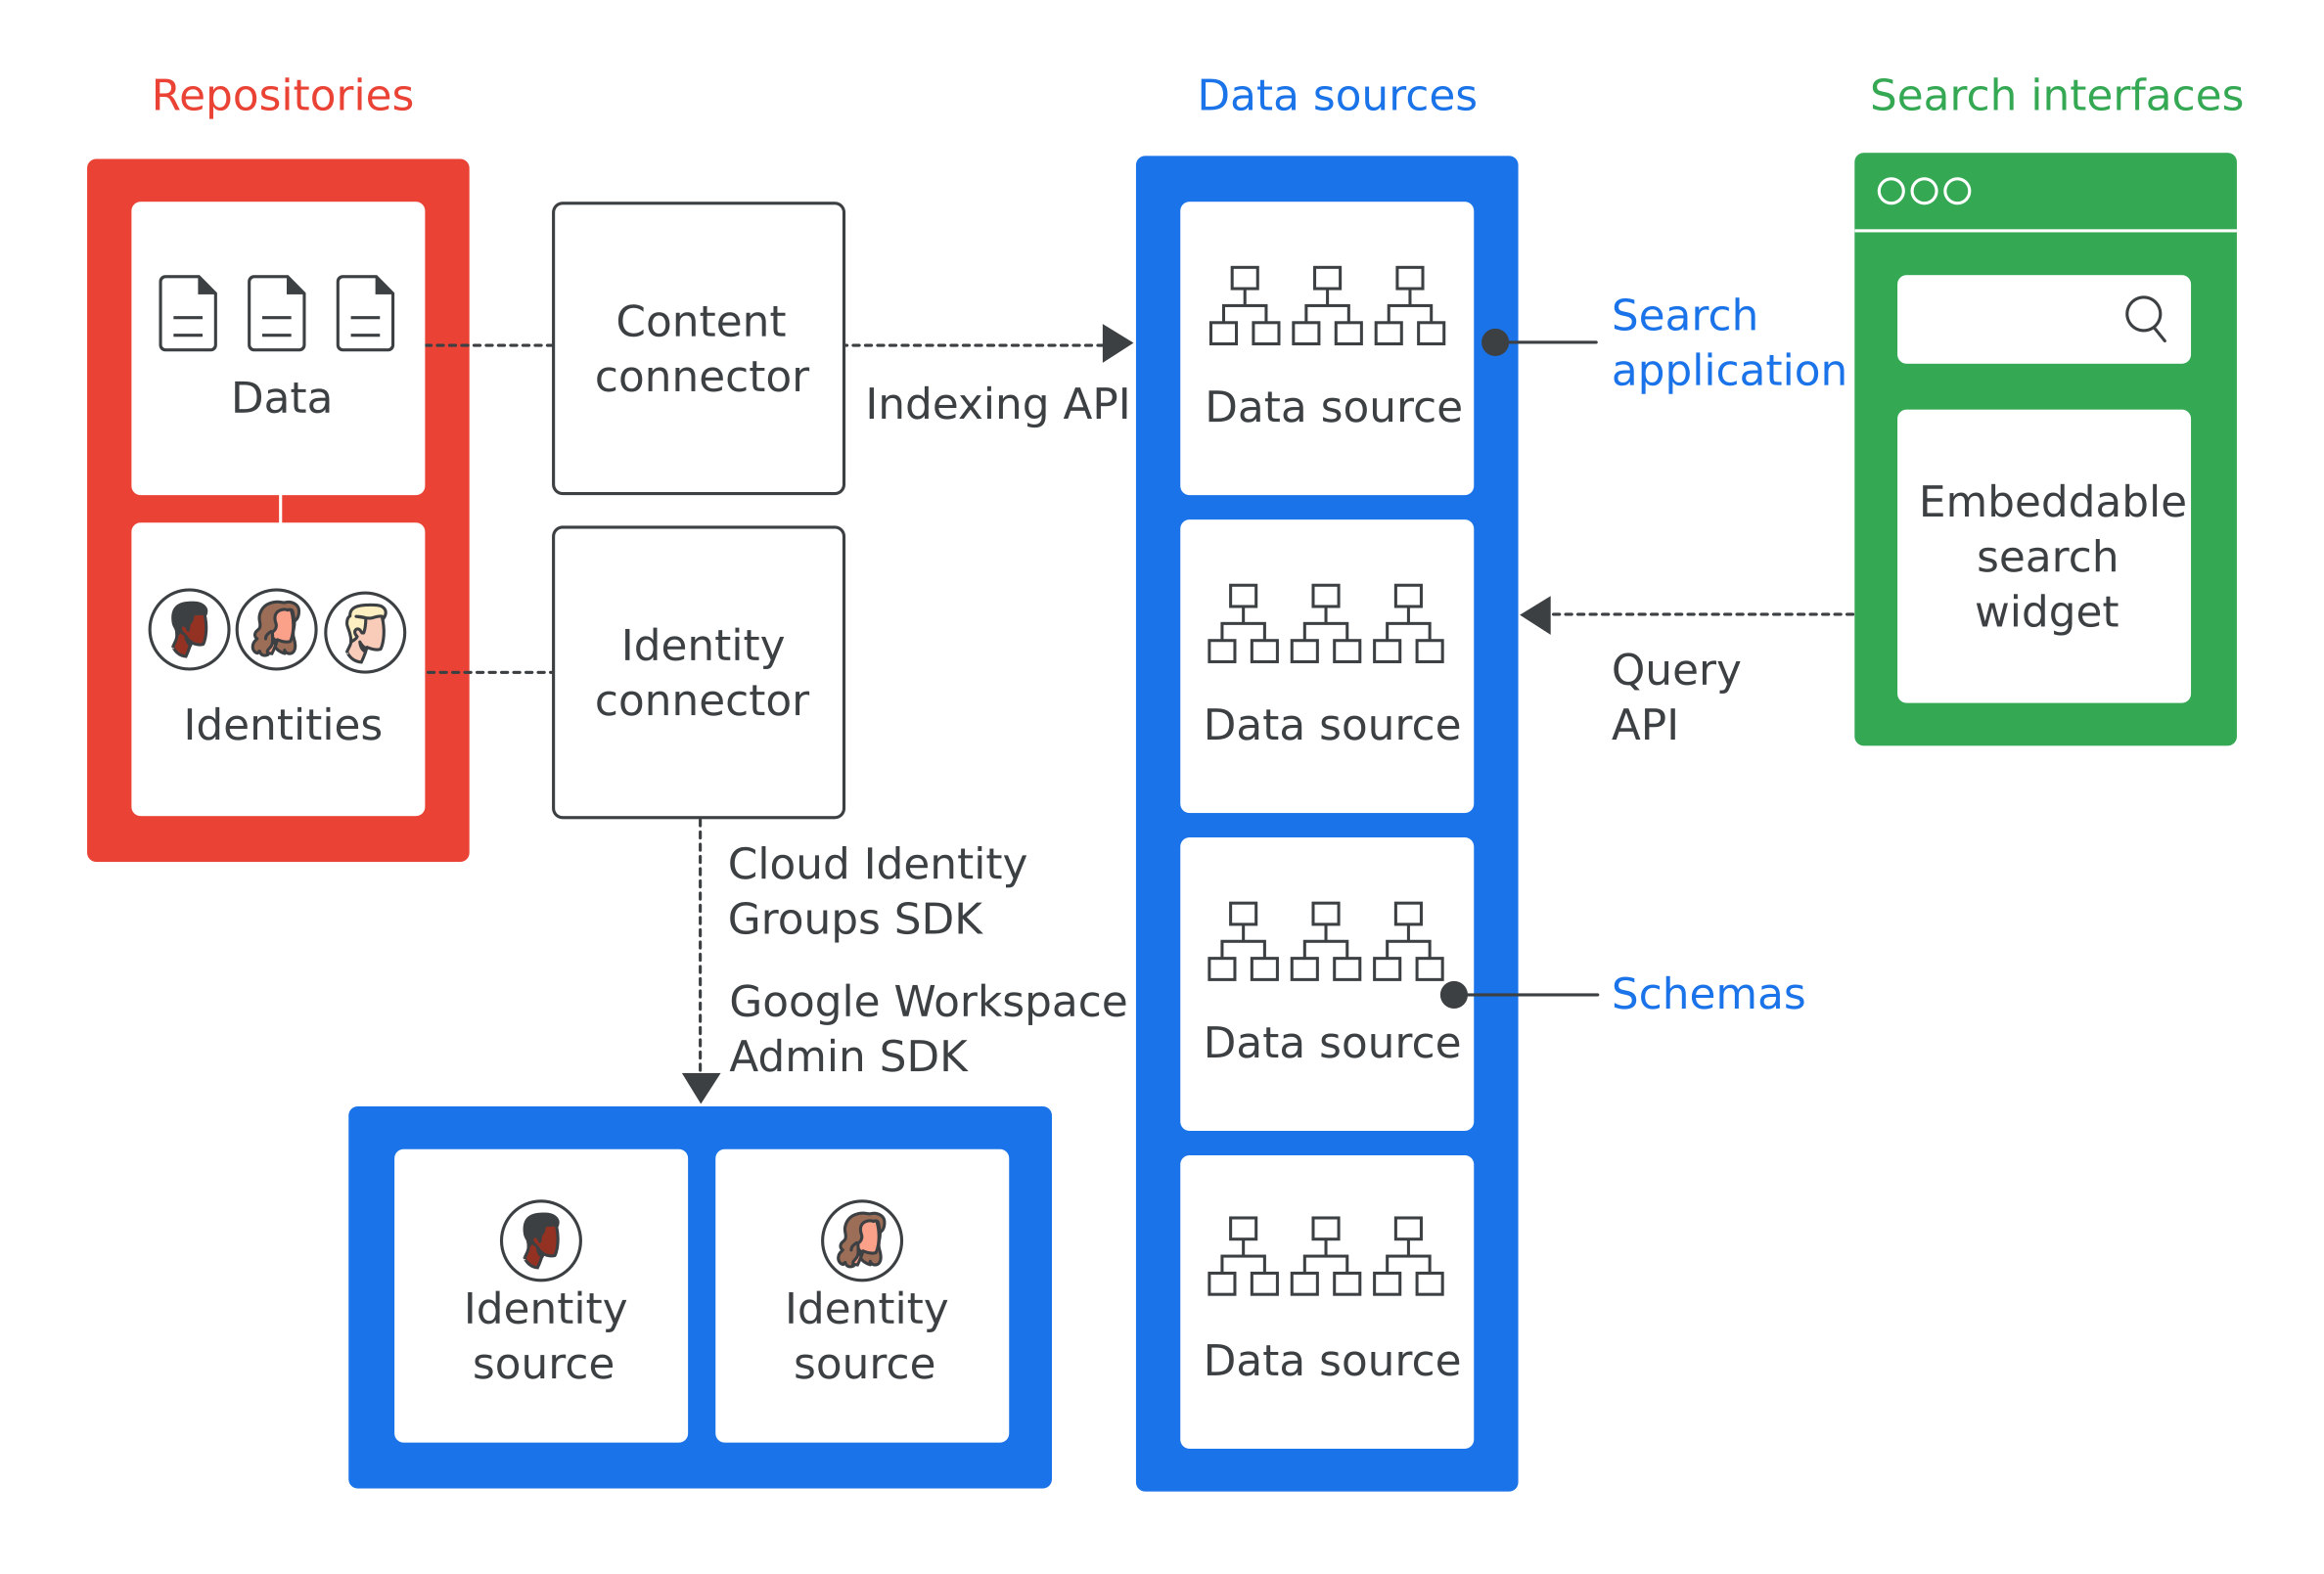 Overview of Google Cloud Search architecture